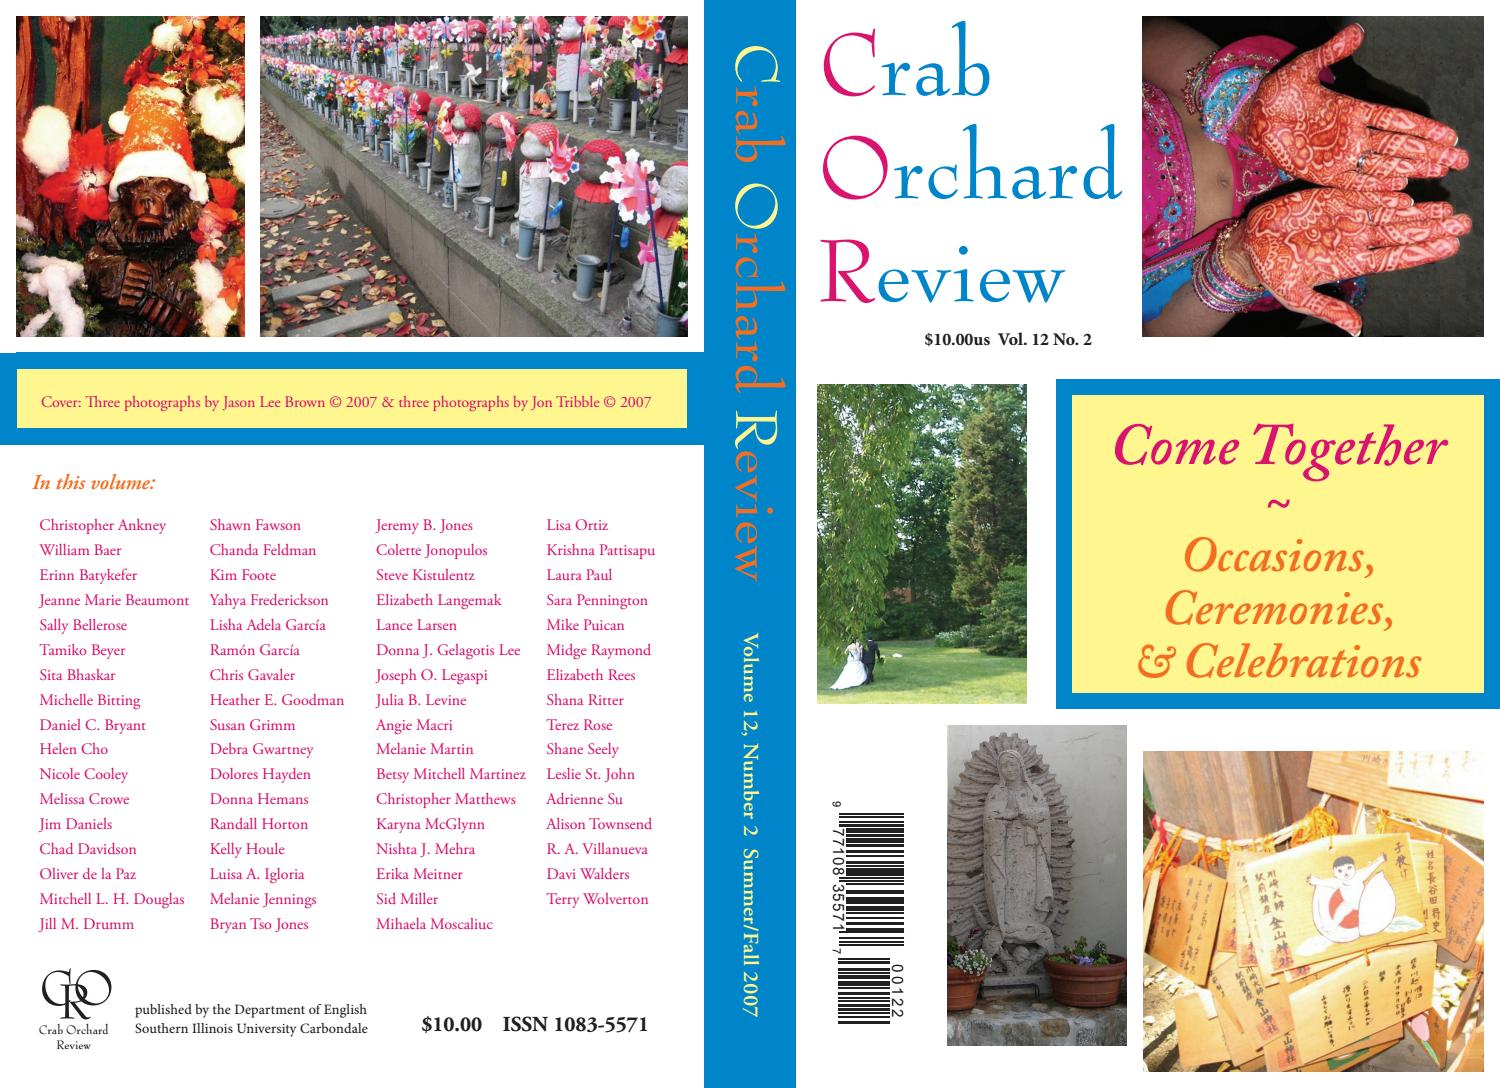 Crab Orchard Review Vol 12 No 2 S/F 2007 by Crab Orchard Review - issuu